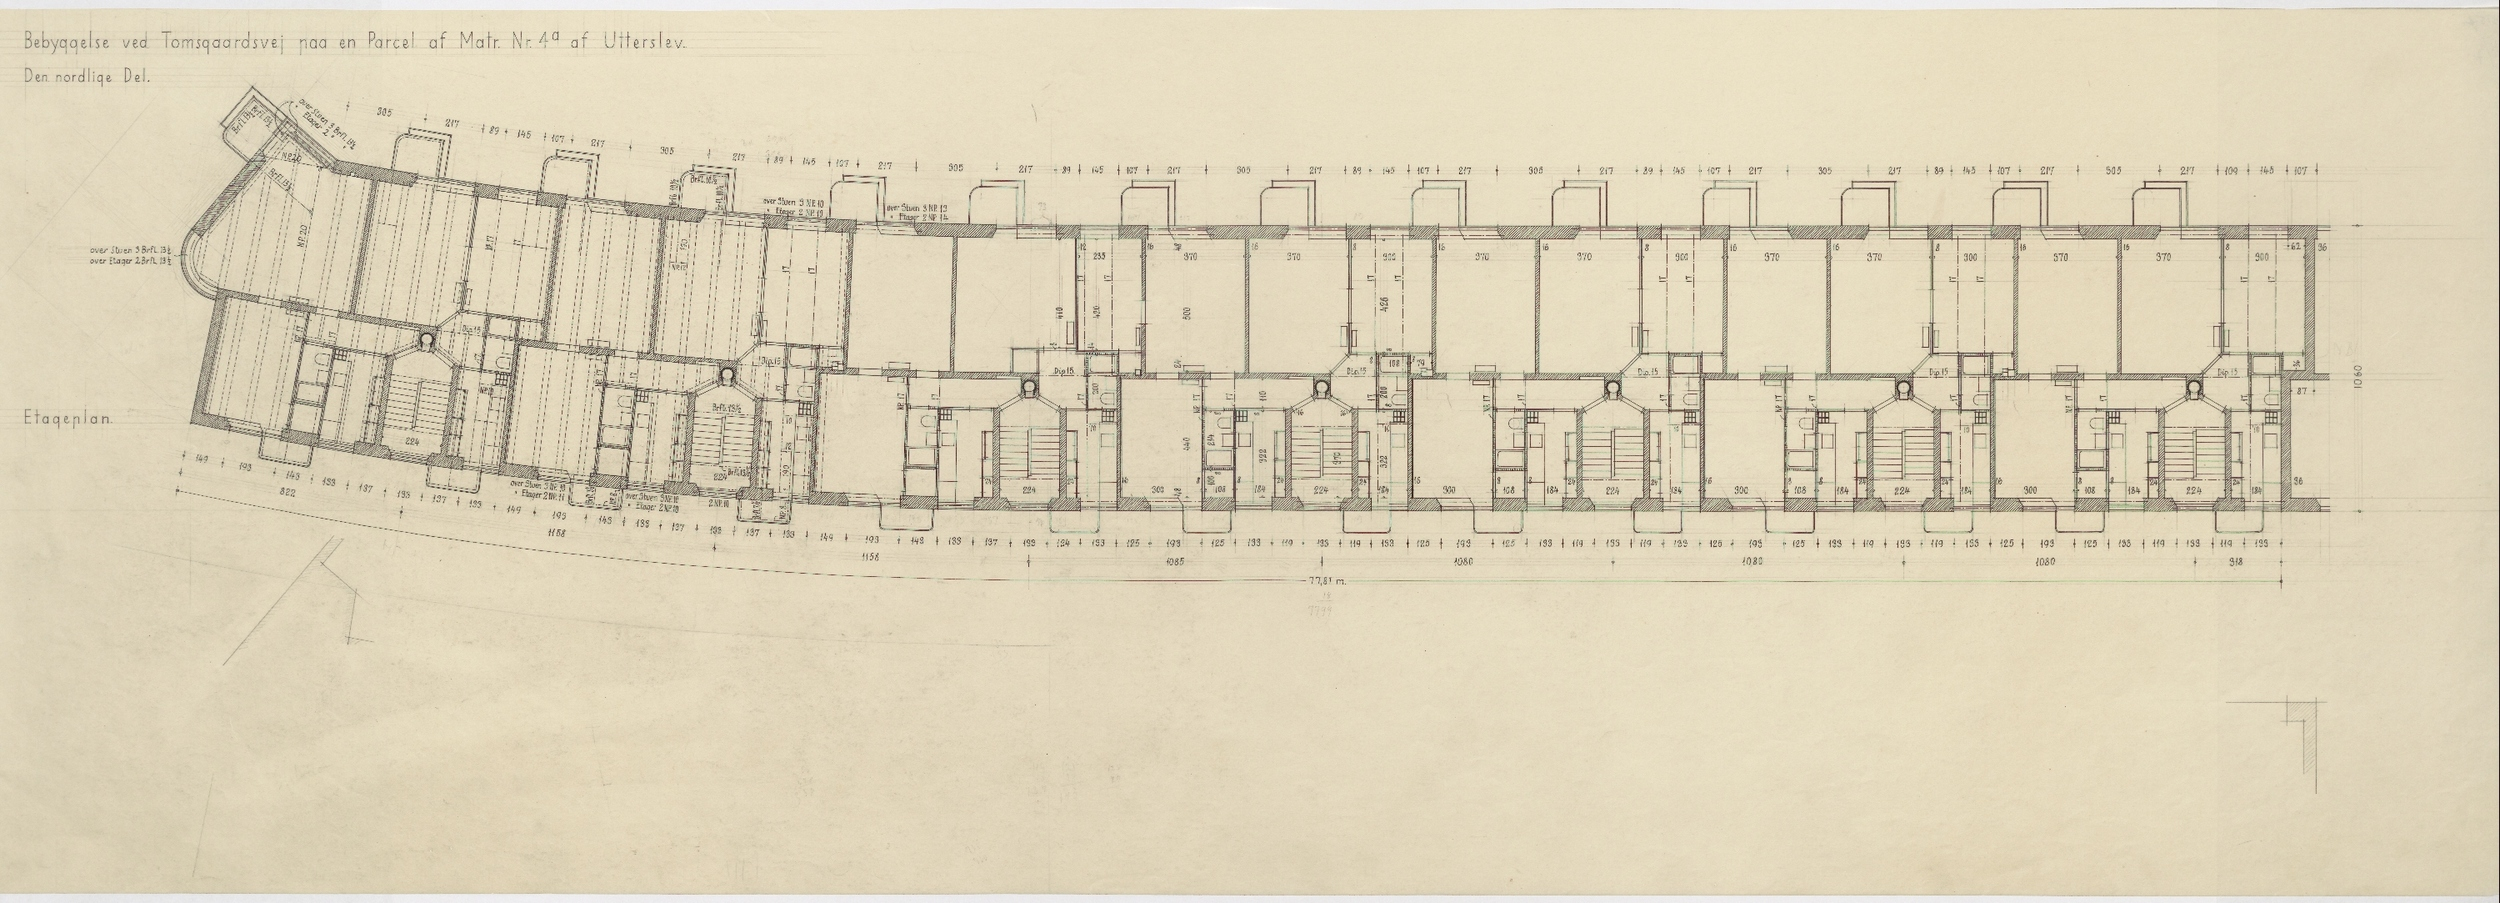 Plan from the collection of the Danish National Art Library